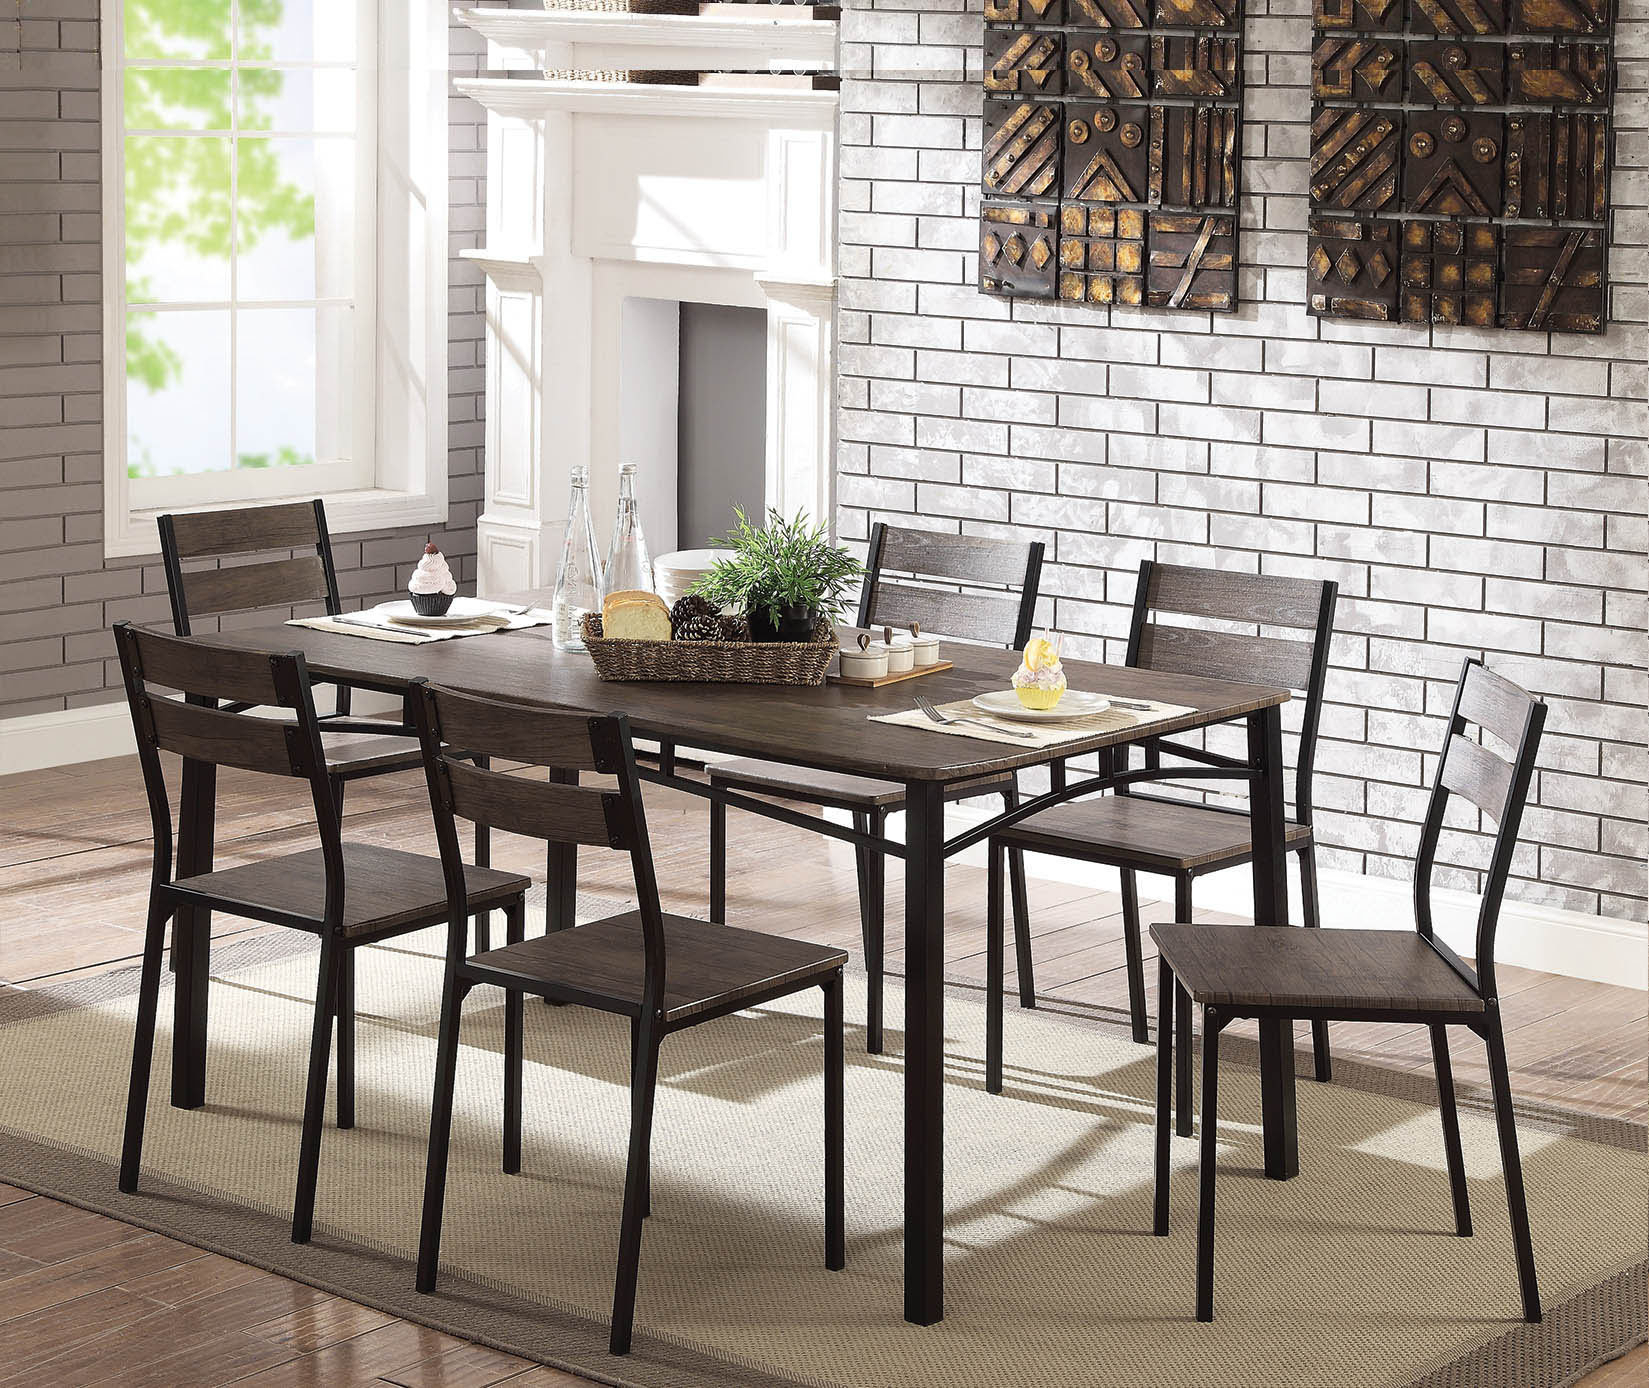 Autberry 7 Piece Dining Set Pertaining To 2018 Autberry 5 Piece Dining Sets (Image 4 of 20)